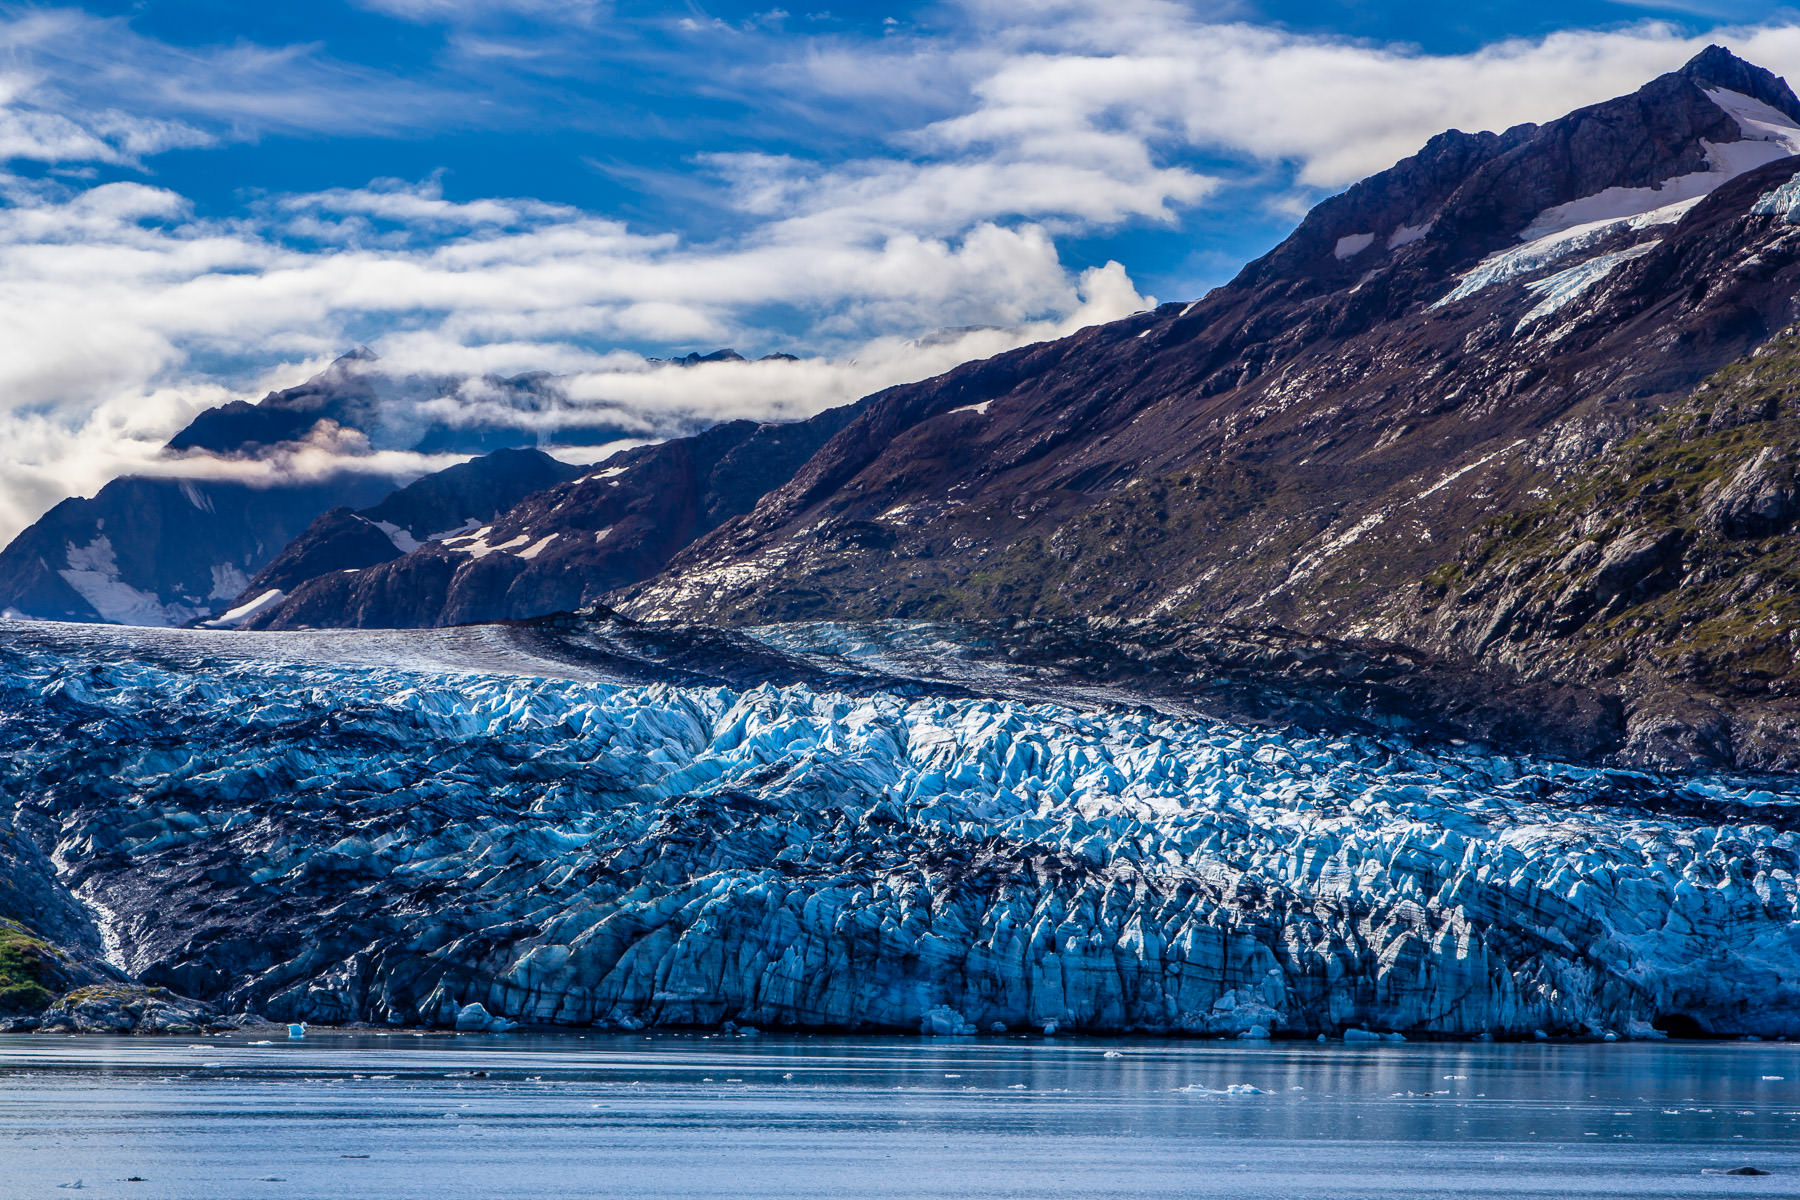 The blue ice of Lamplugh Glacier hugs the coastline of Alaska's Glacier Bay.